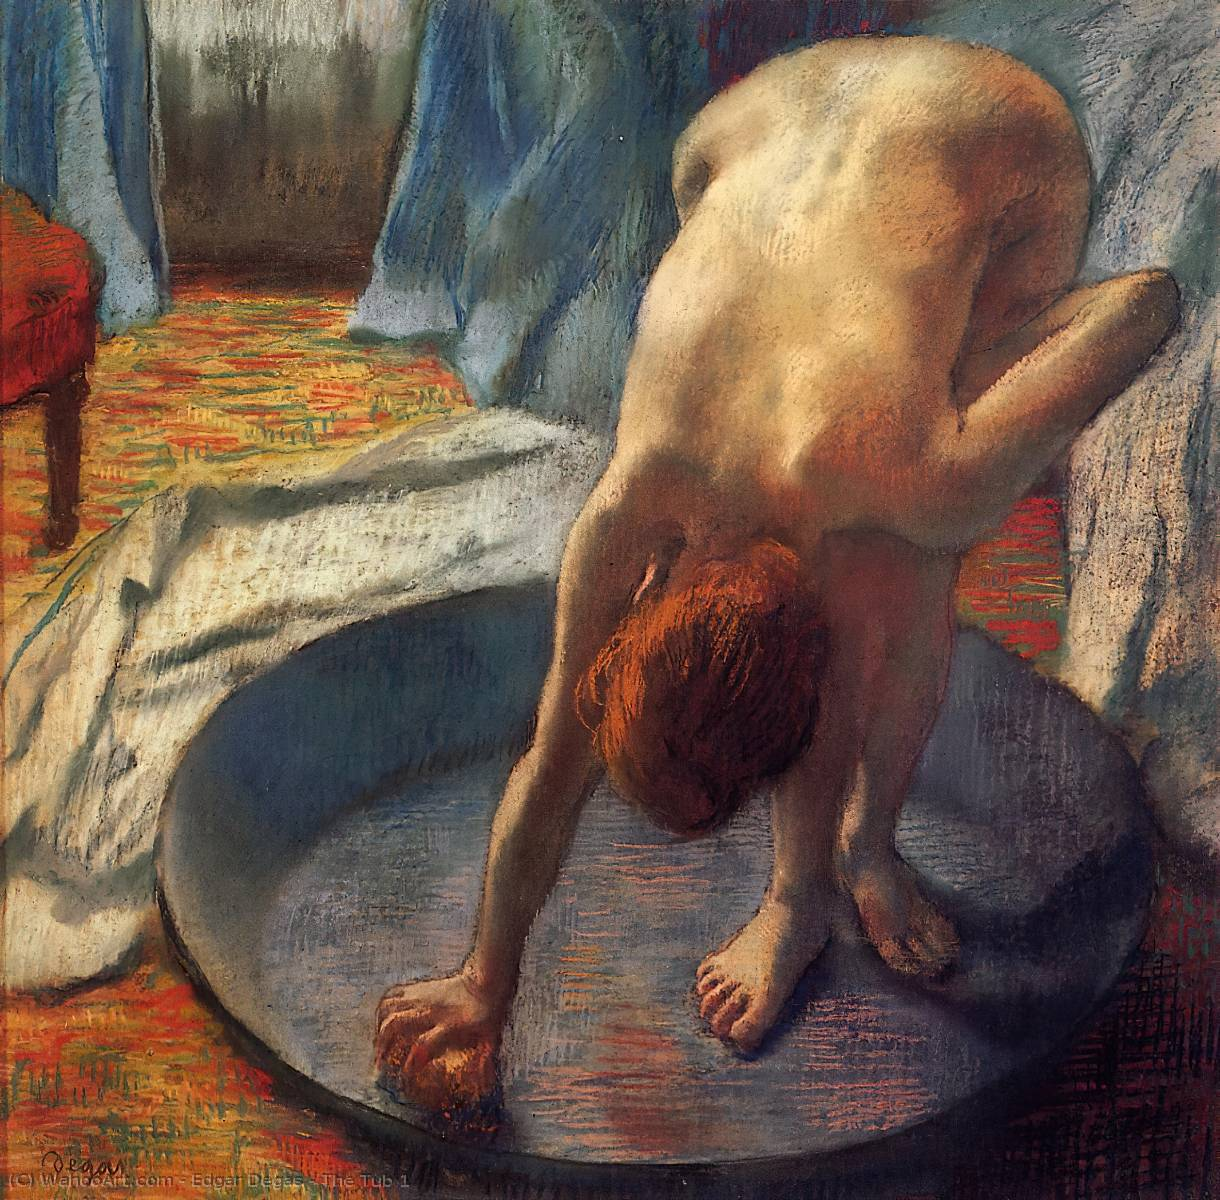 famous painting The Tub 1 of Edgar Degas